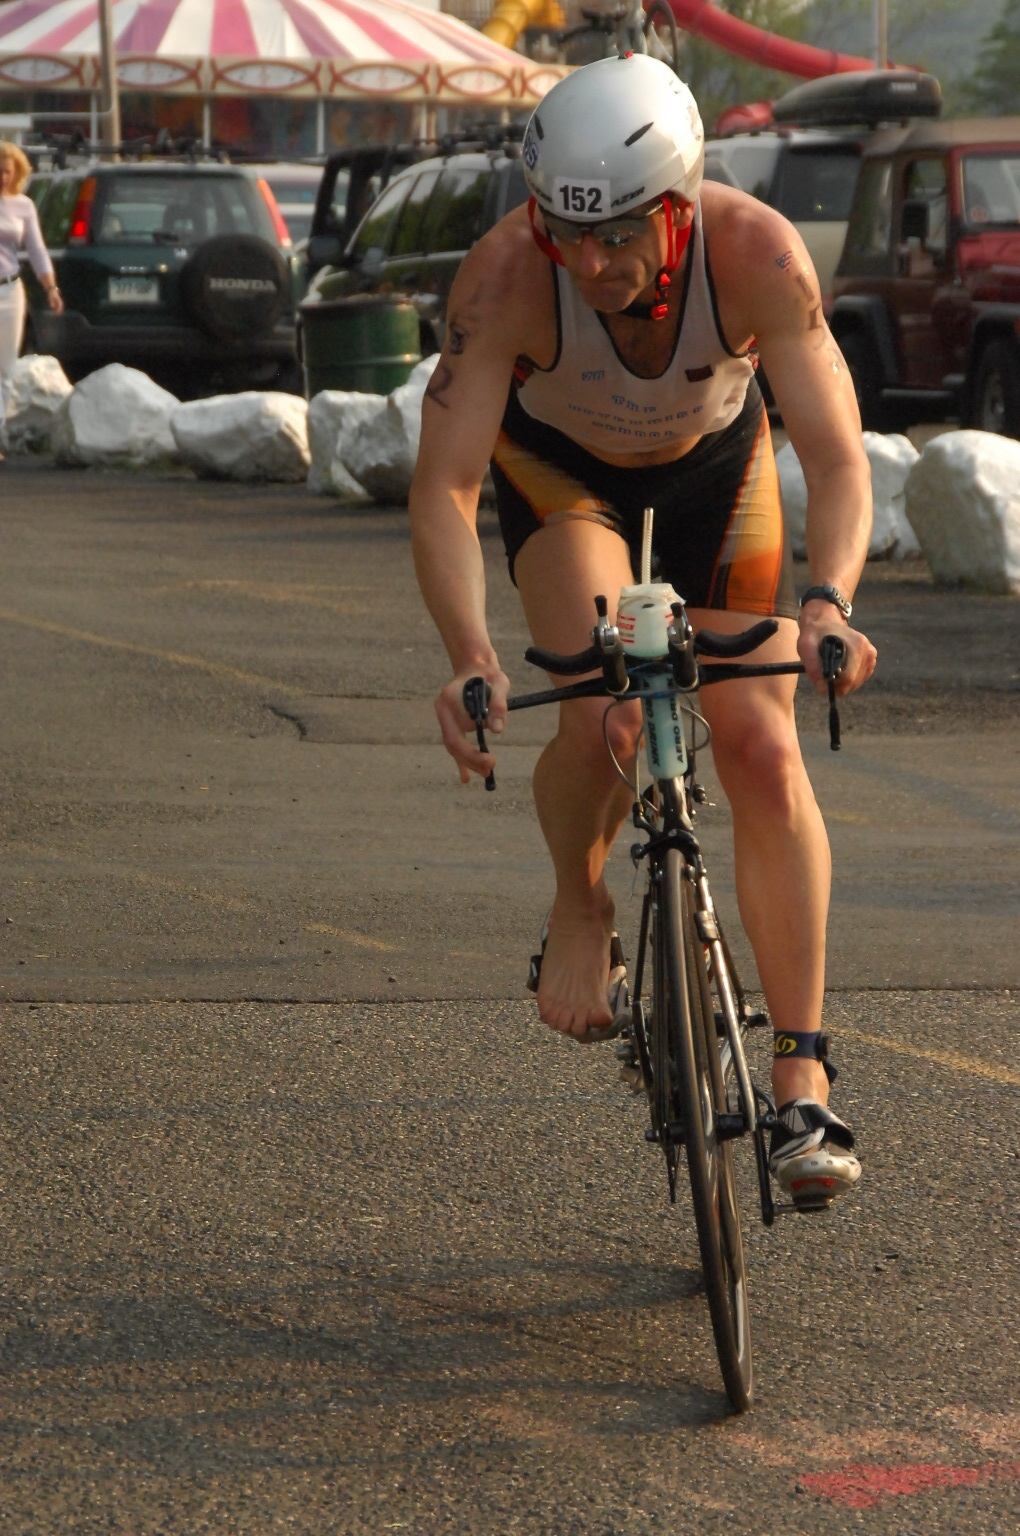 Triathlon Trial Lawyer Doug Landau understands the difficulties athletes face when trying to prove objective signs of injury